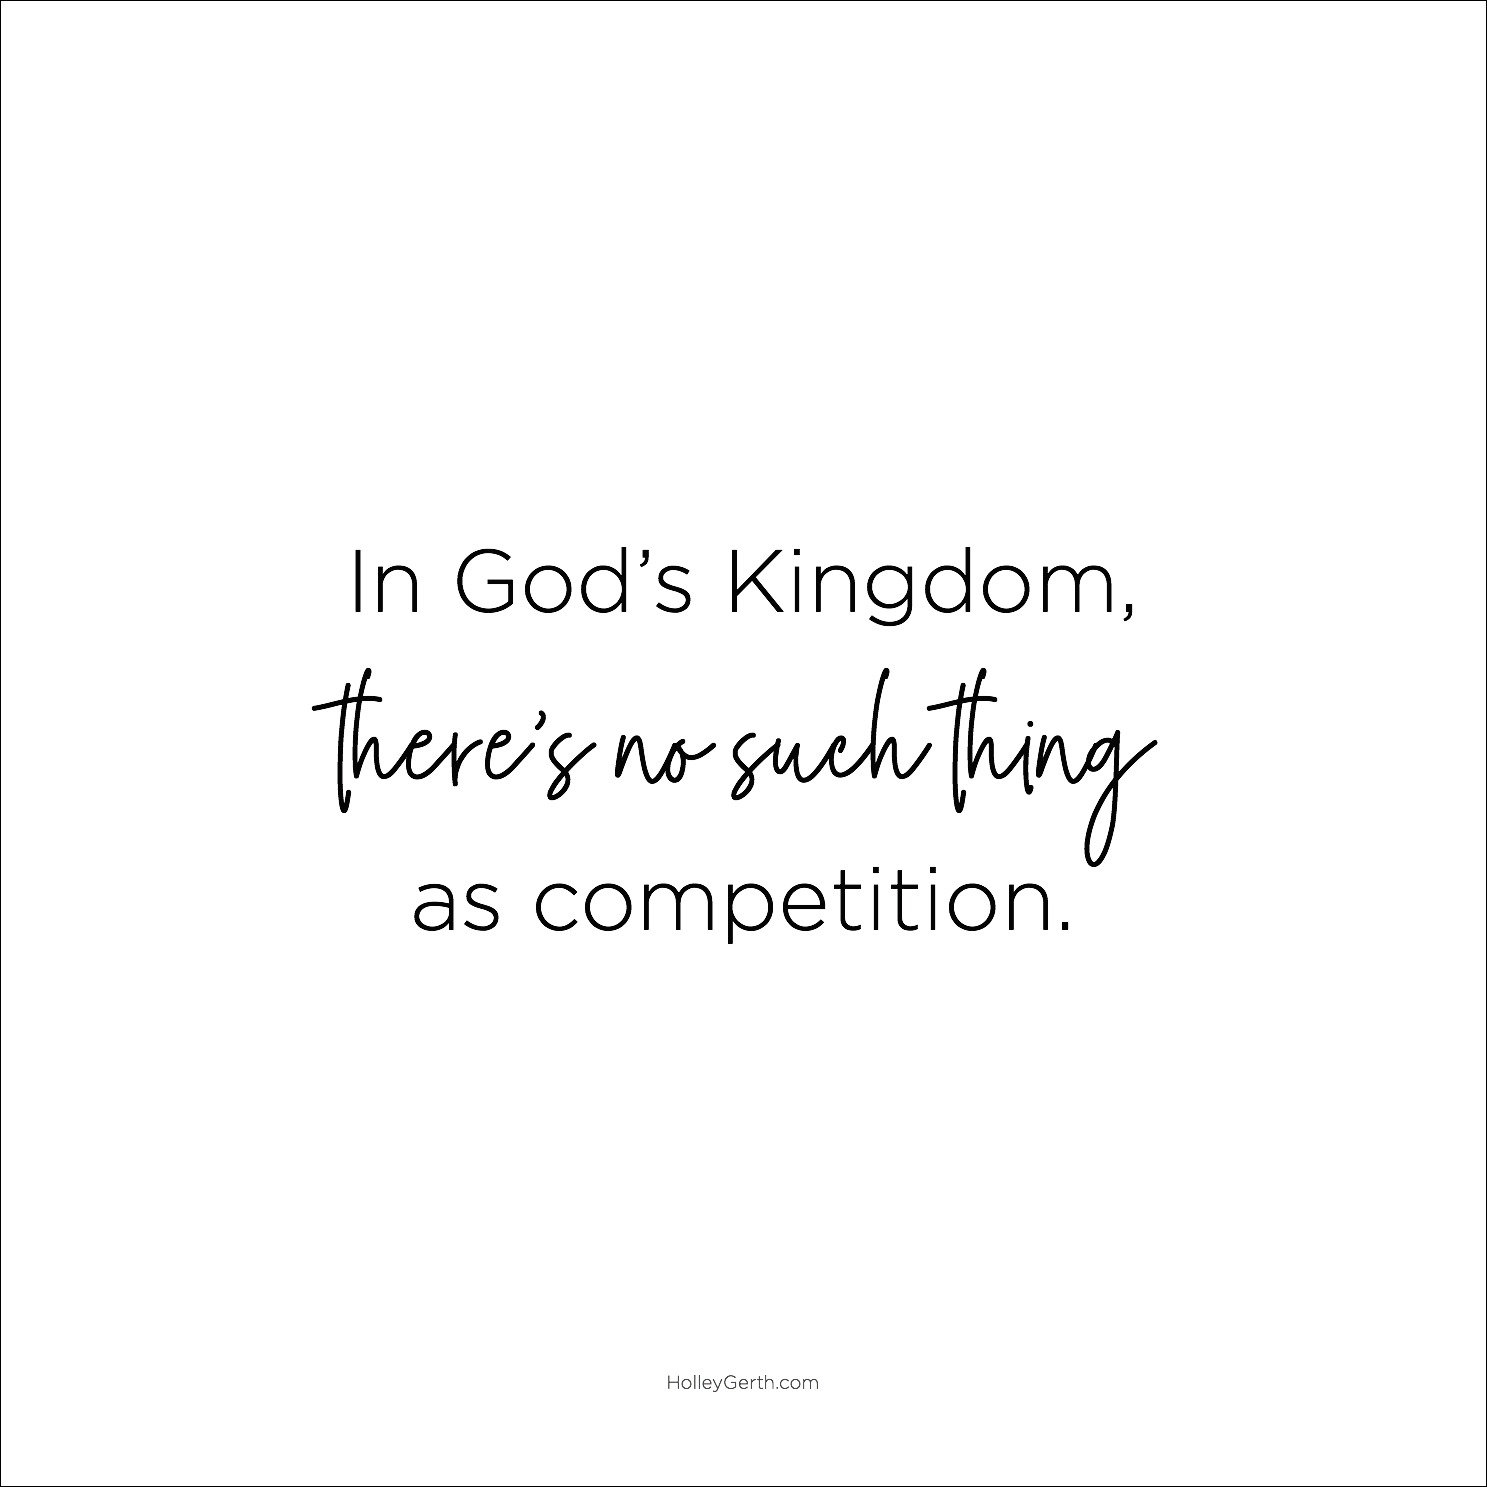 There's No Such Thing as Competition